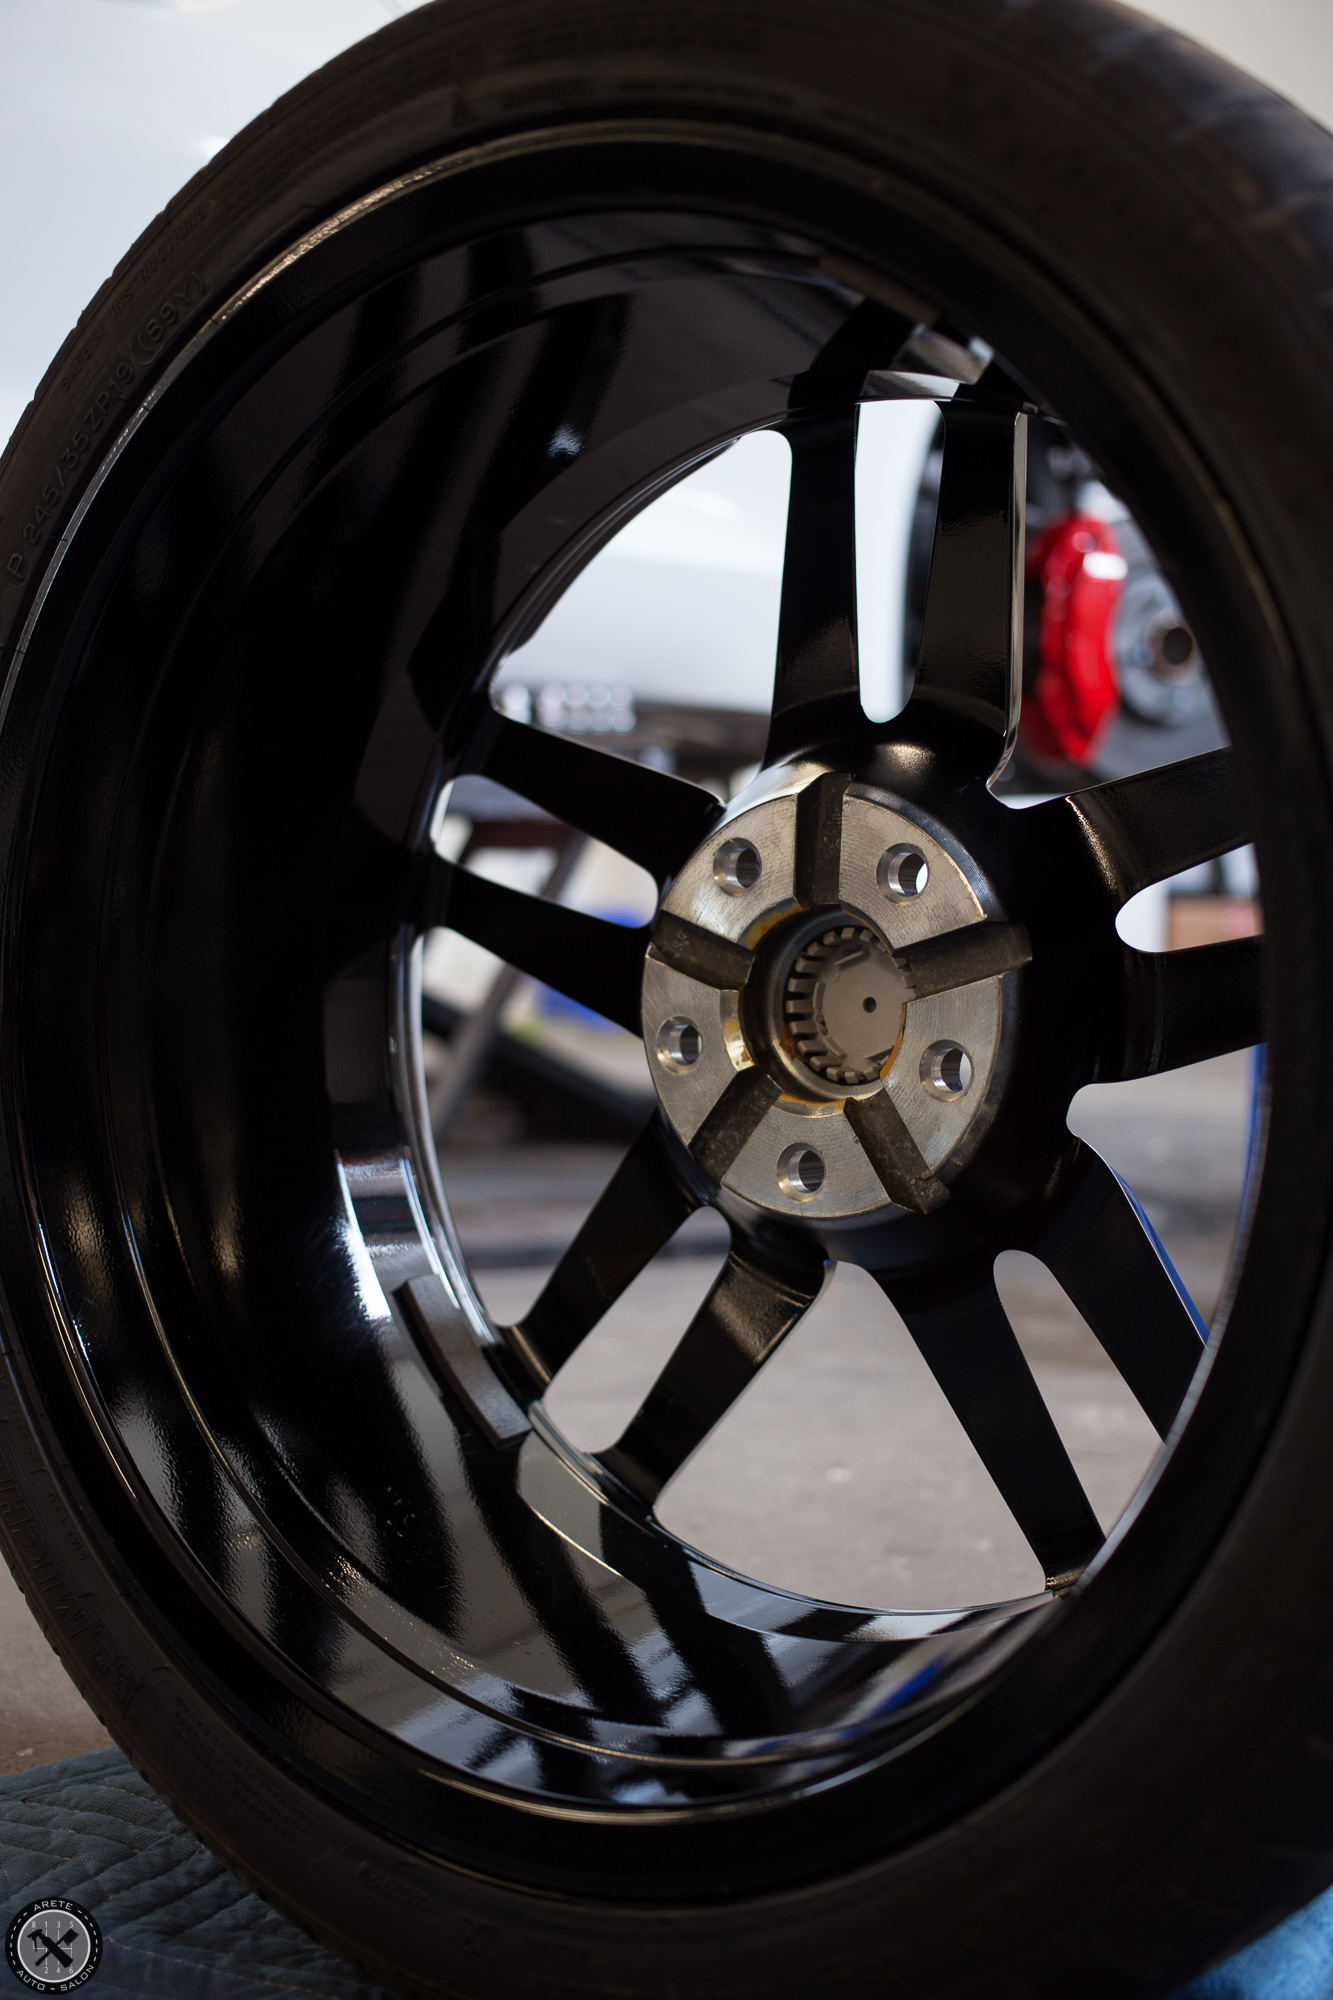 The wheels were removed for an inside out decontamination in preparation for coating in CQuartz DLUX. Now they will be a dream to clean and look even better to boot!